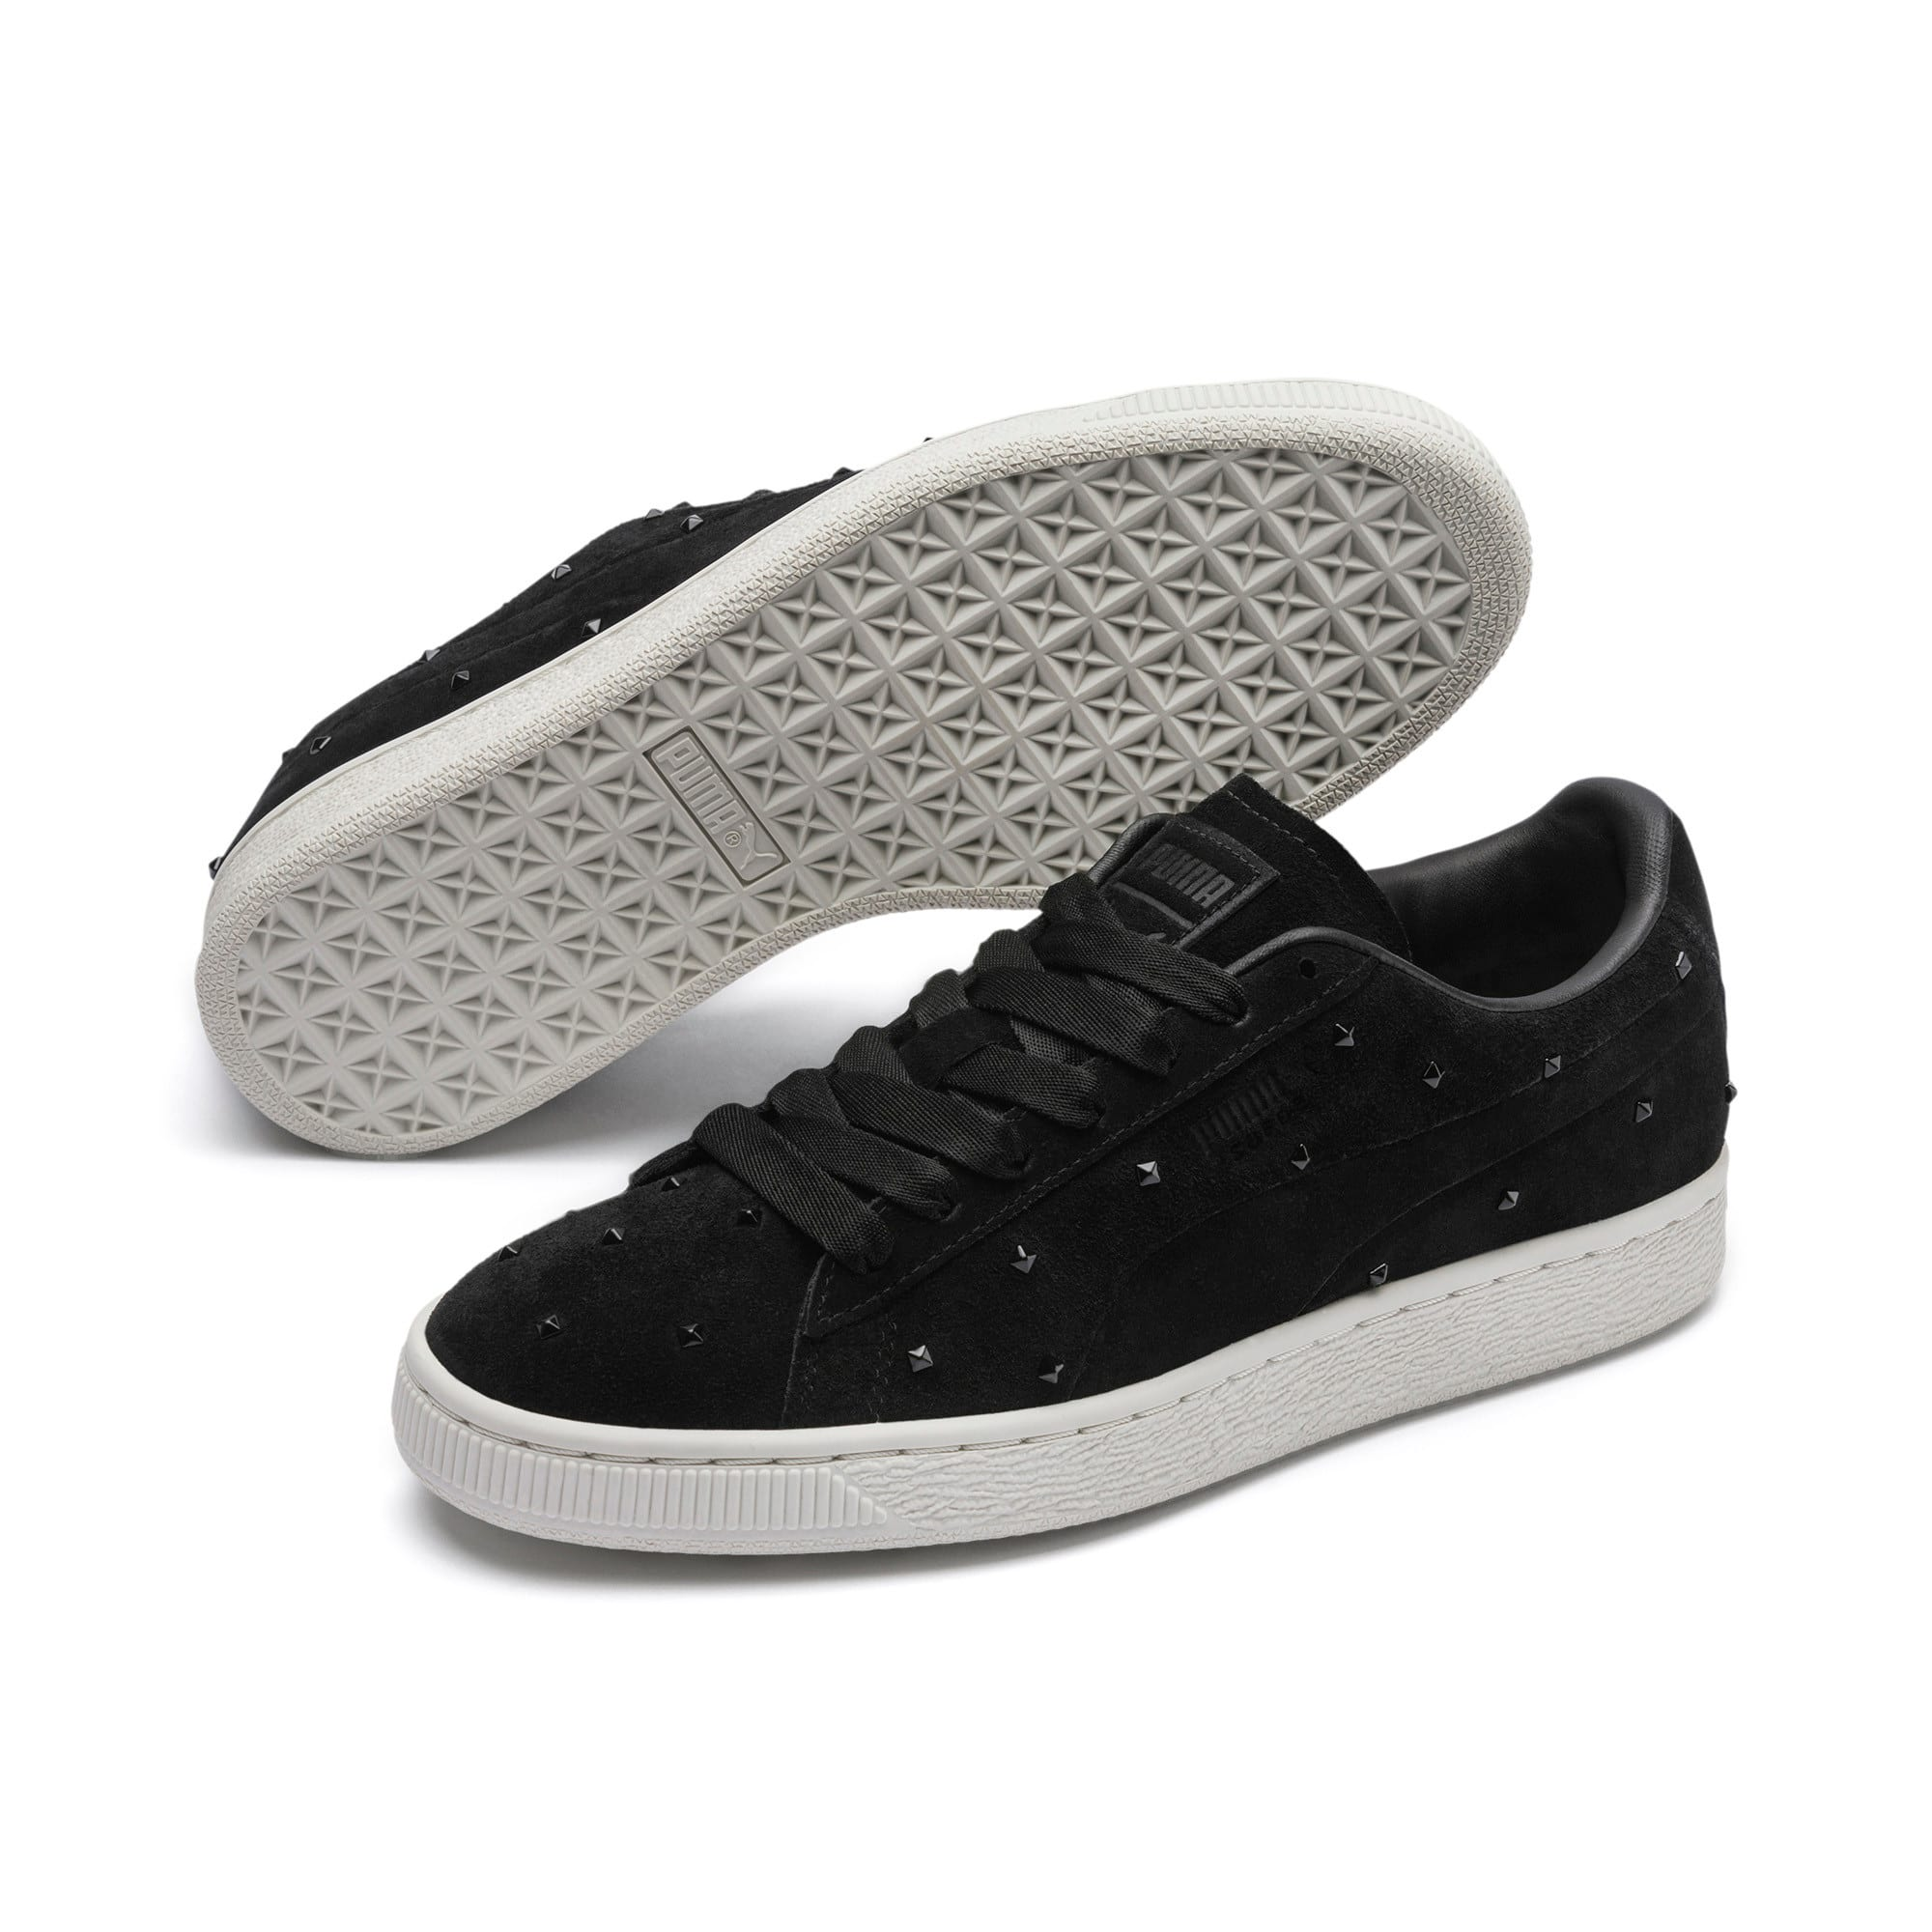 Thumbnail 3 of Suede Studs Women's Trainers, Puma Black-Marshmallow, medium